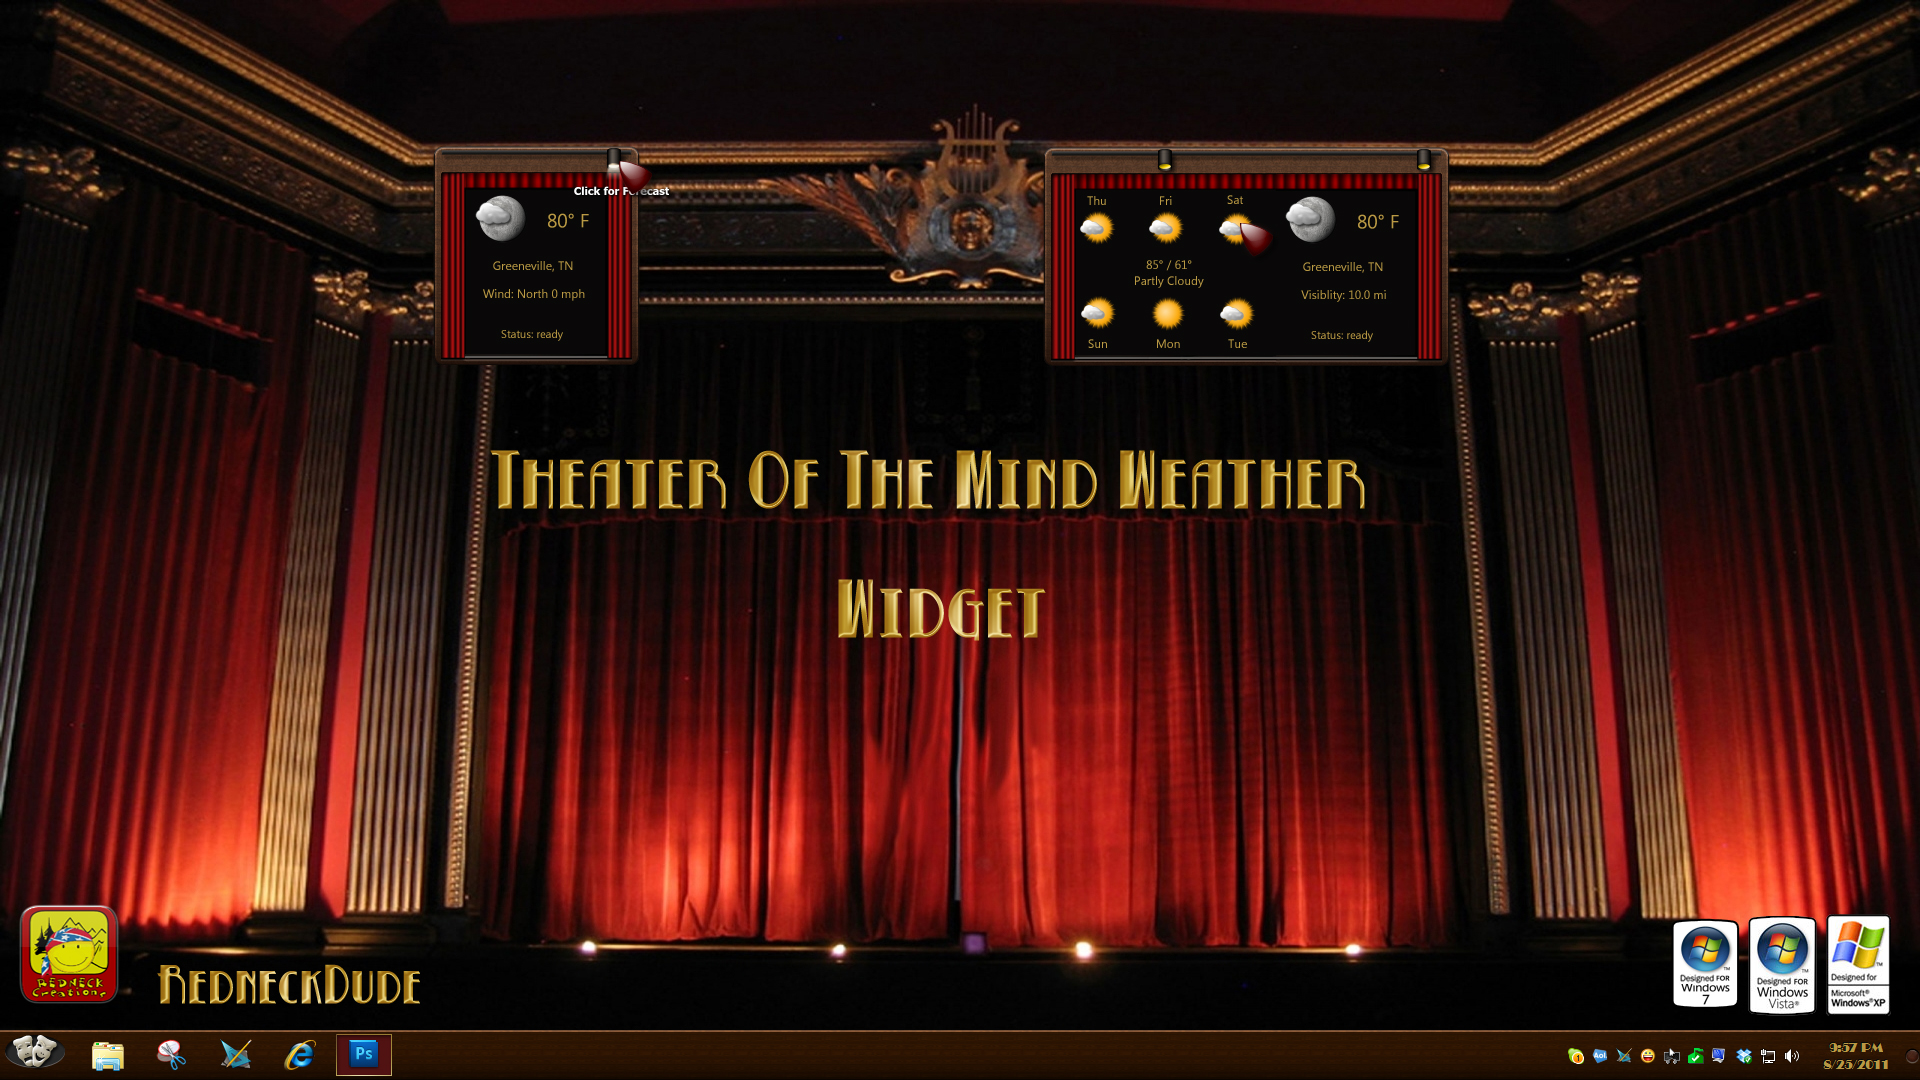 Theater Of The Mind Weather Widget